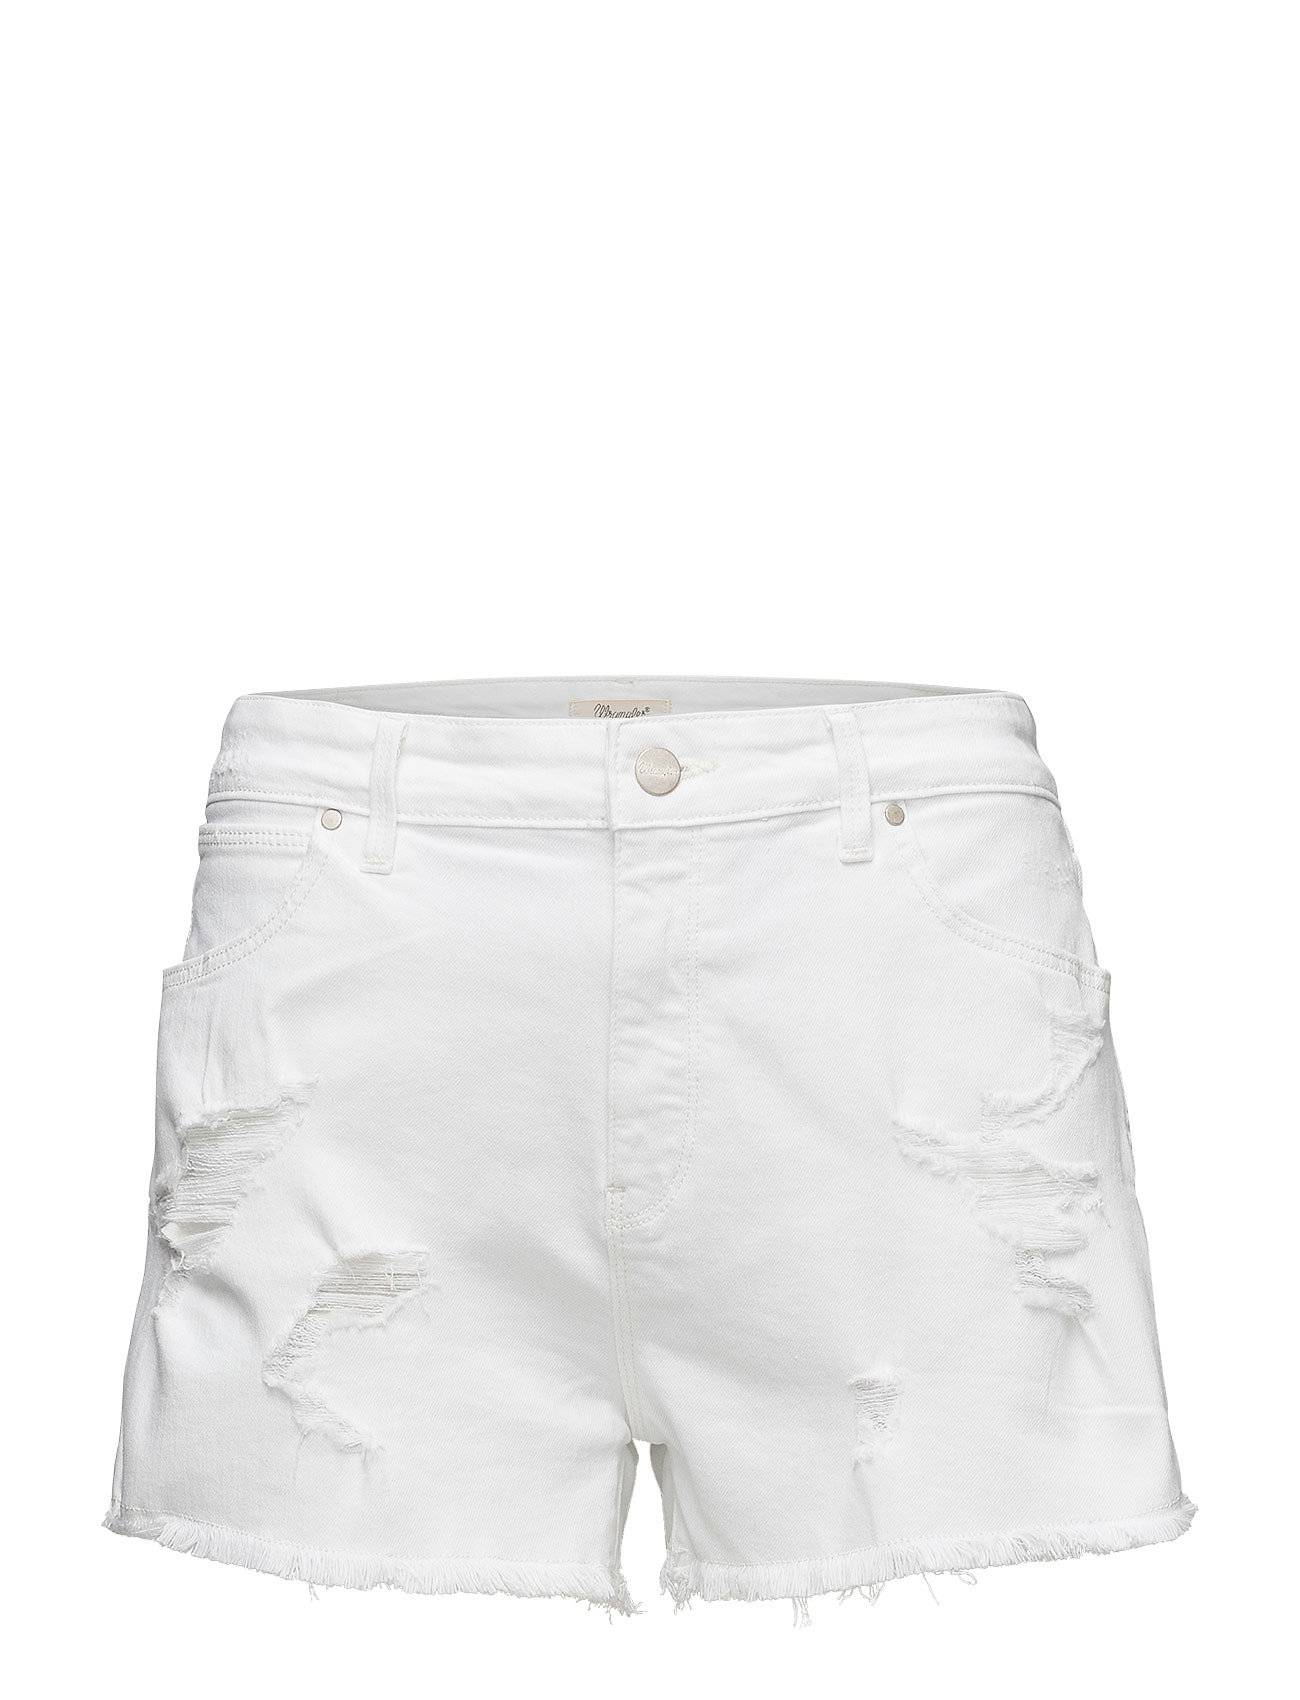 Wrangler Boyfriend Short Damaged White